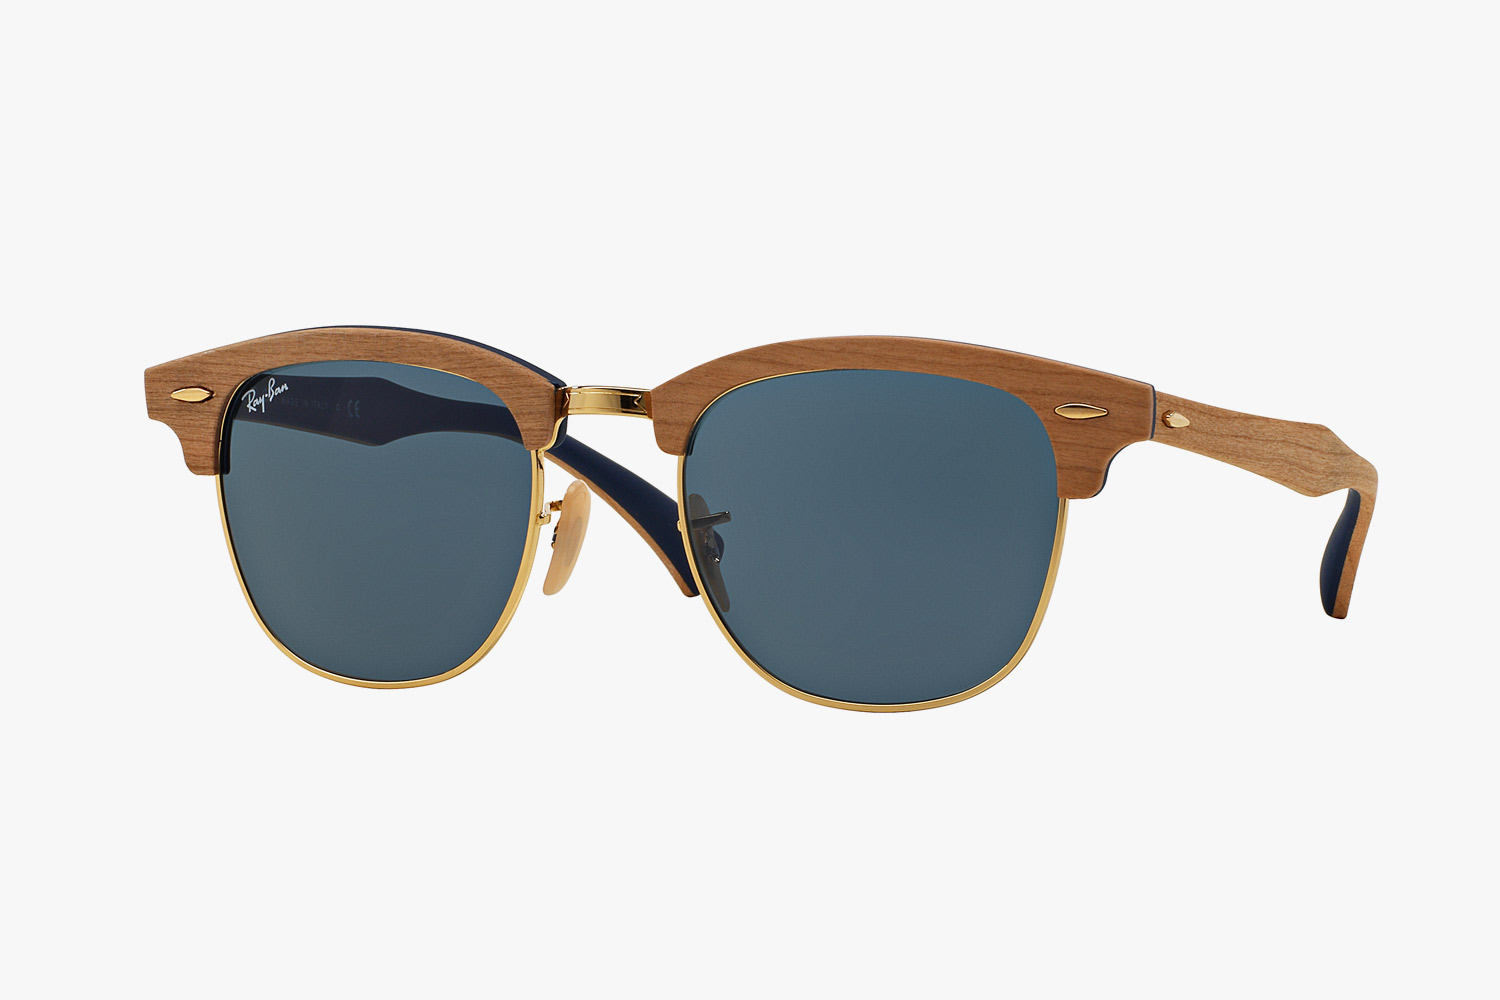 Ray-Ban-Wood-Clubmaster-Glasses-06